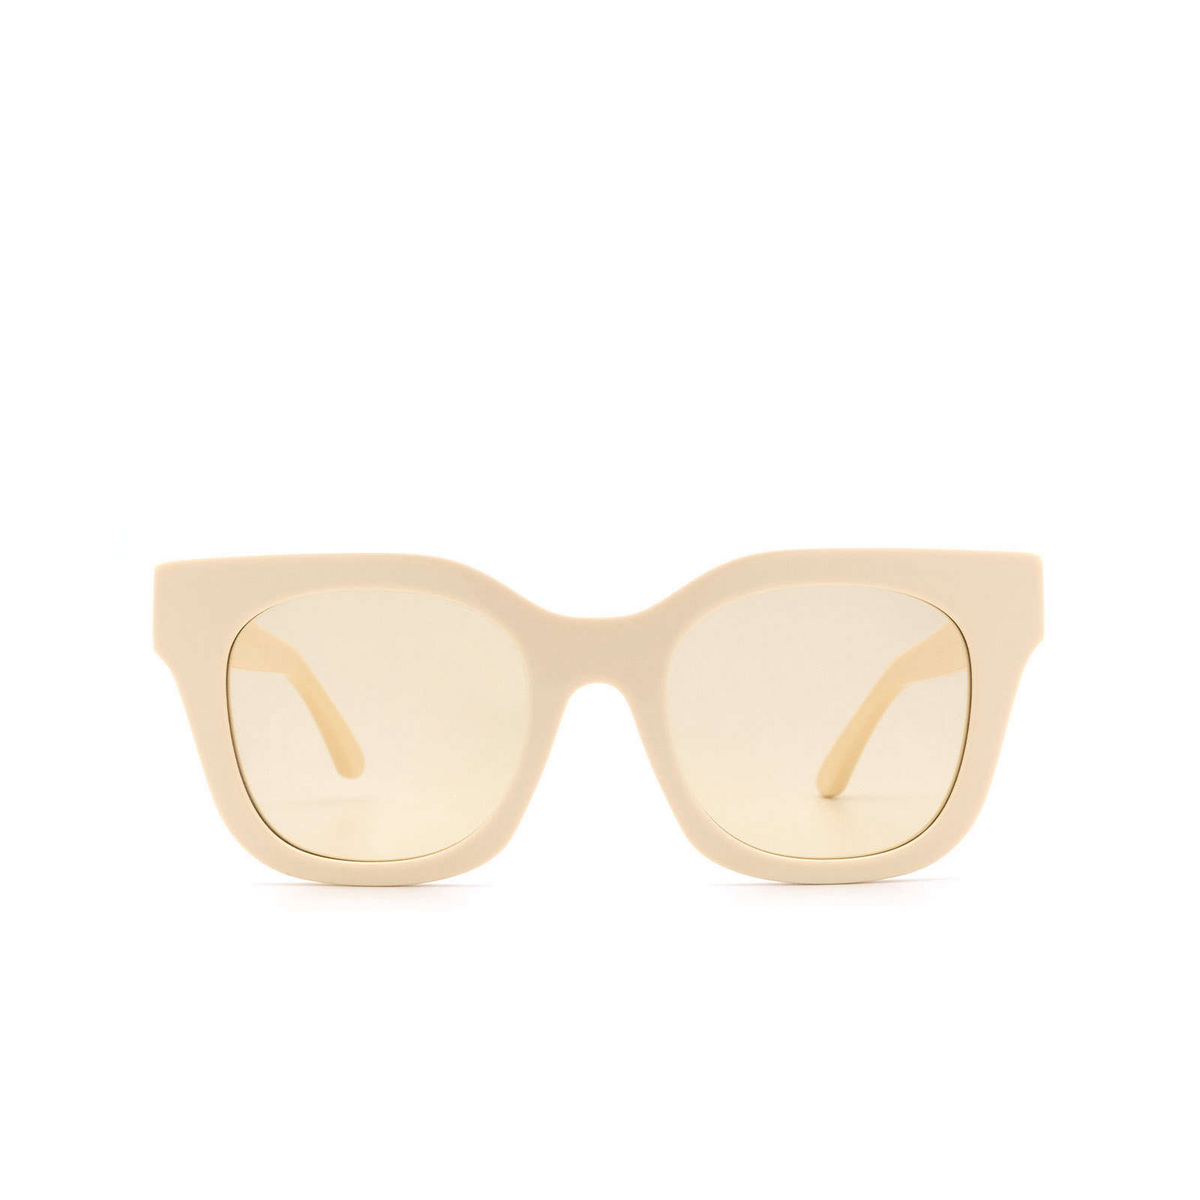 Huma® Square Sunglasses: Blue color Ivory 07 - front view.